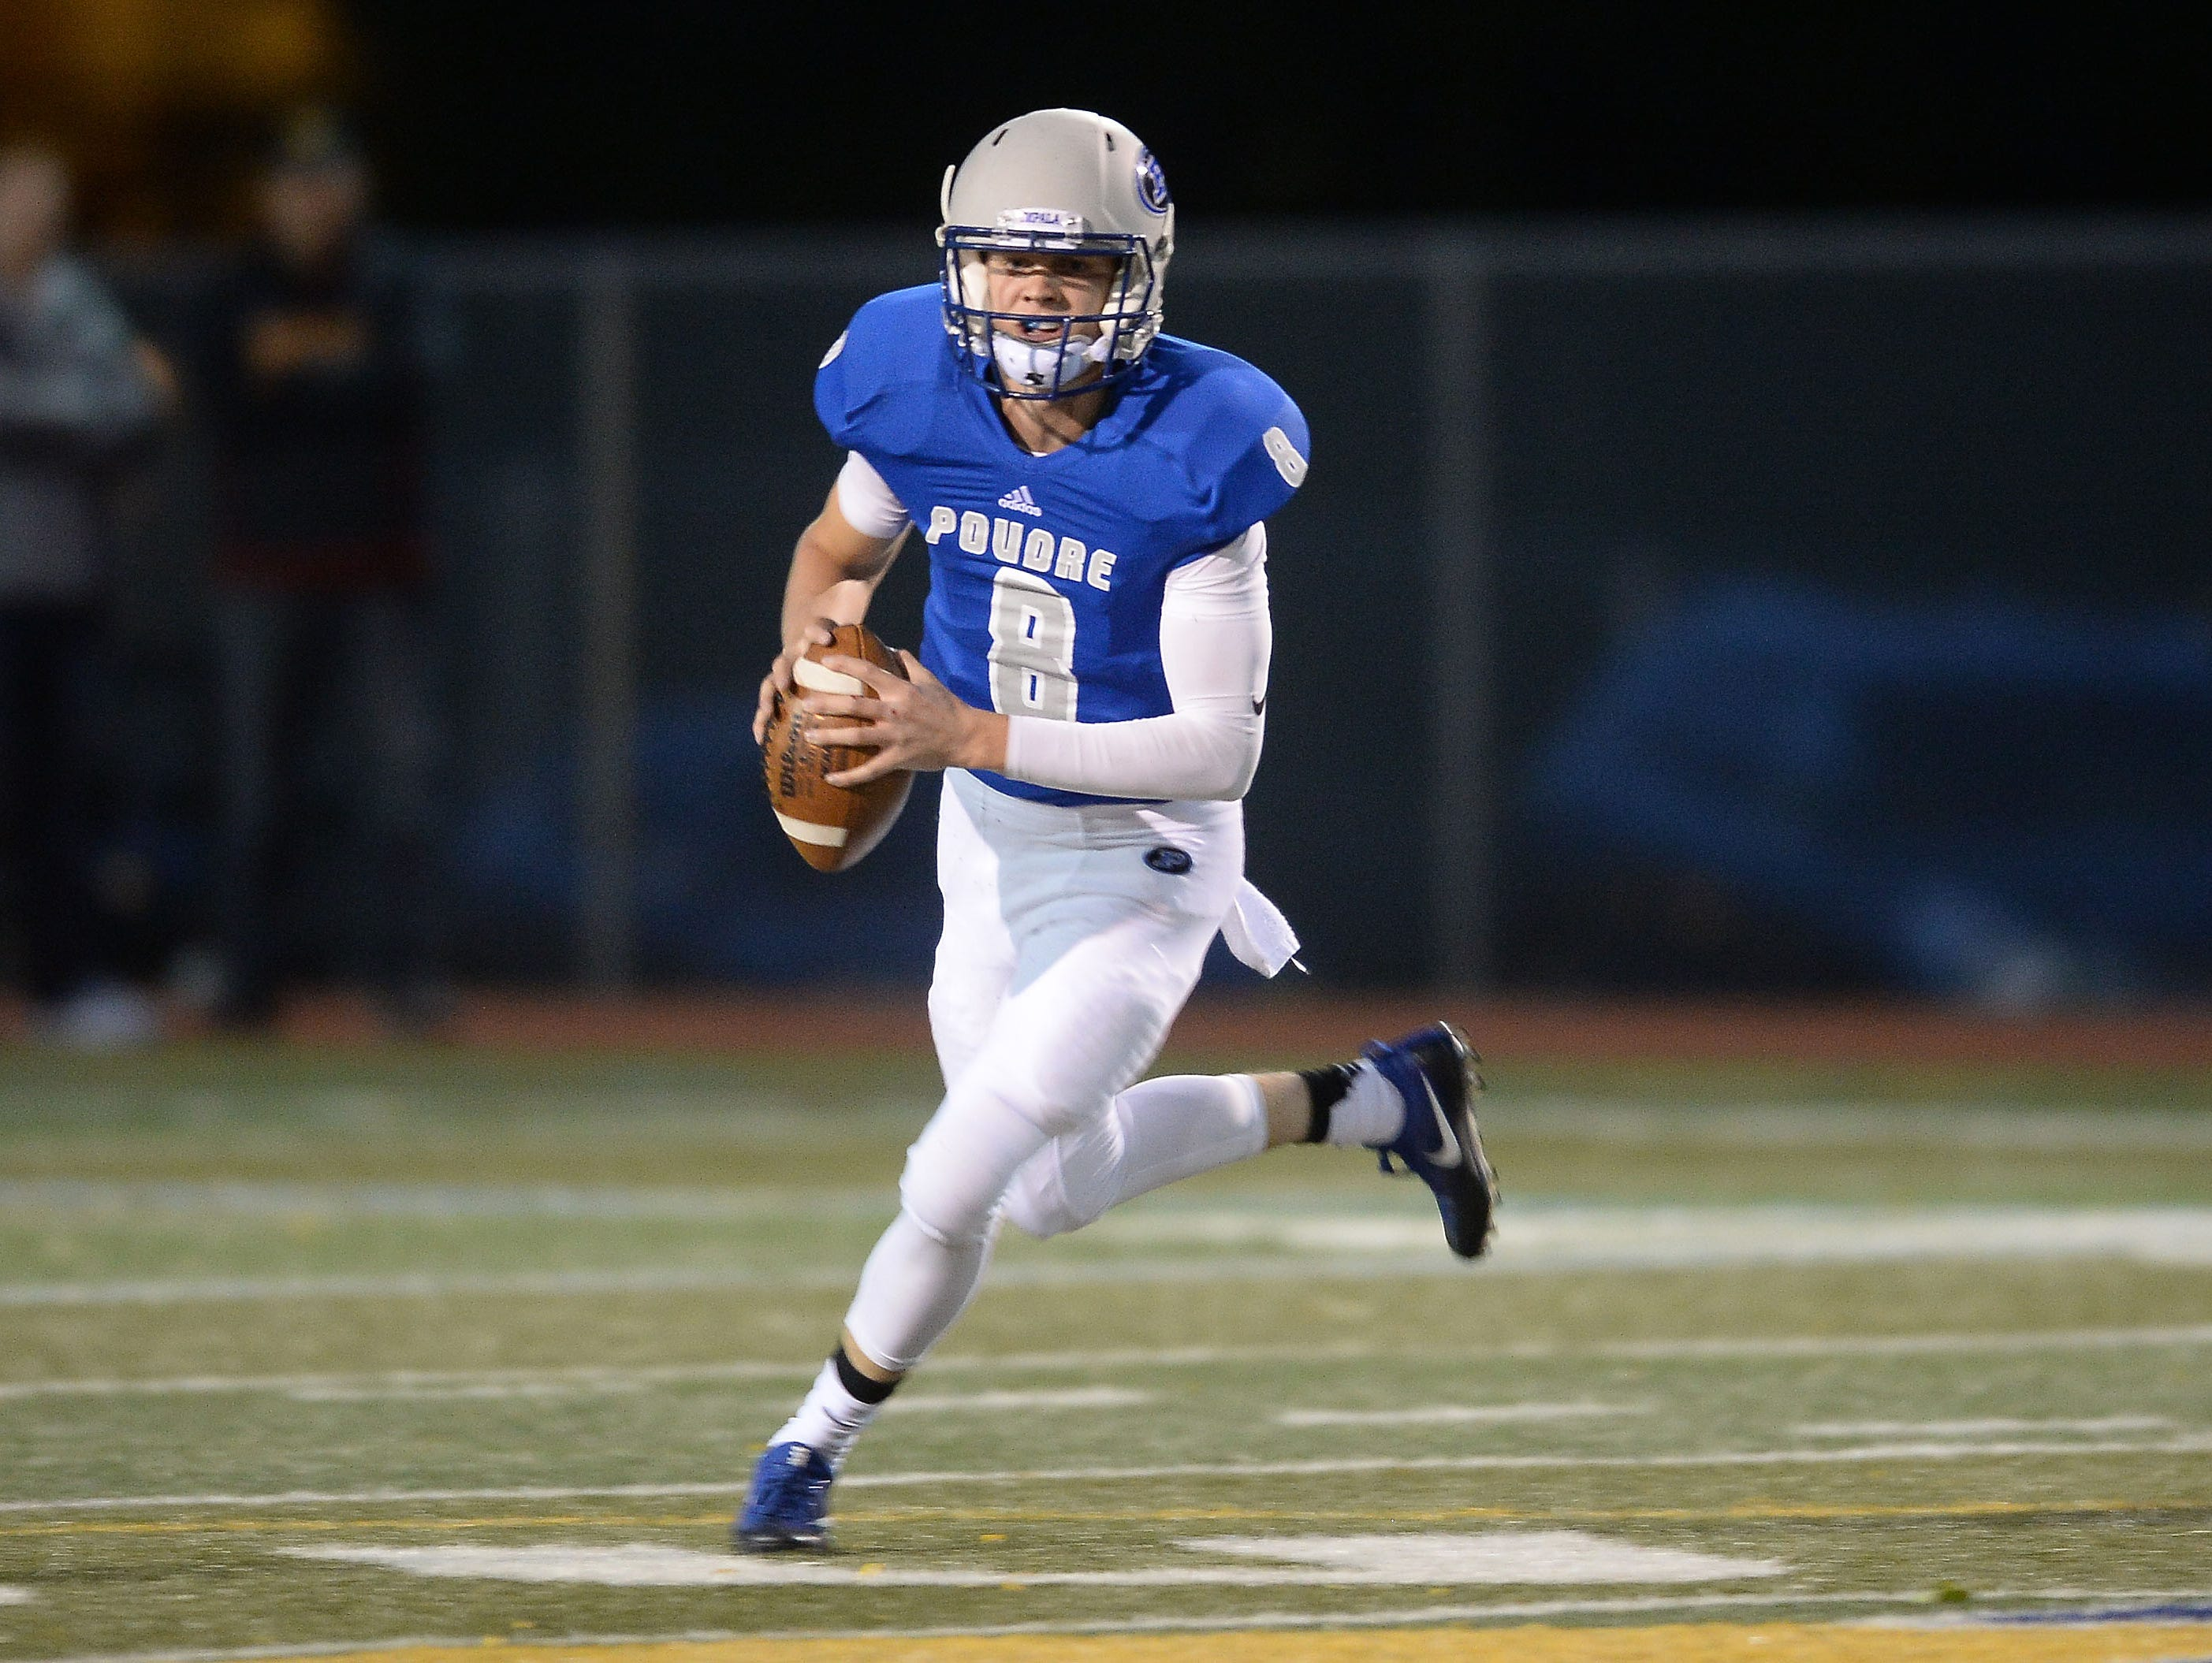 Poudre High School quarterback James Campbell looks for an opening in a game against Rocky Mountain High School on Friday. The Impalas won 13-6.